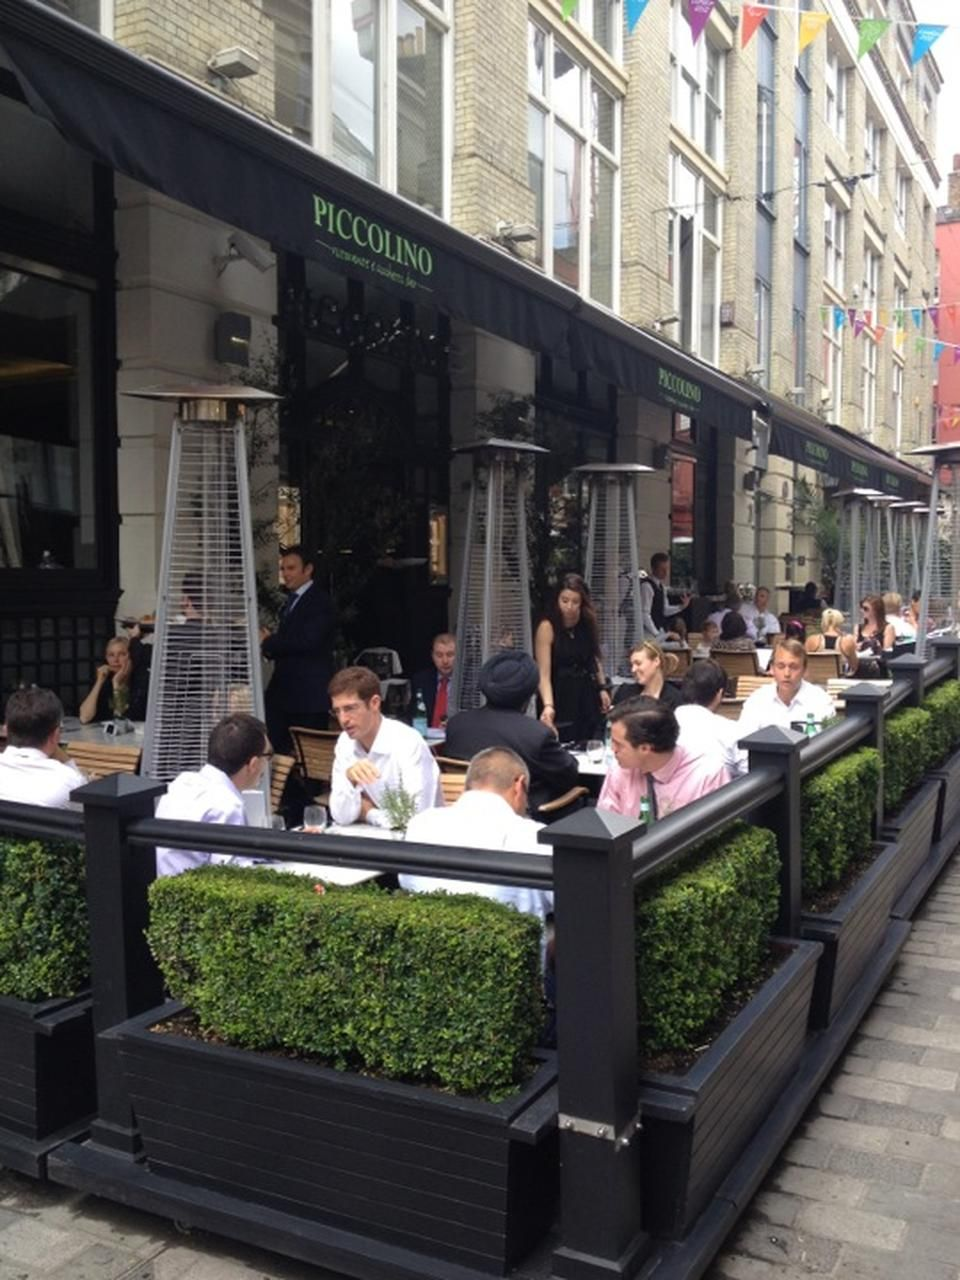 Italian restaurant exterior - Piccolino Italian Restaurant In London